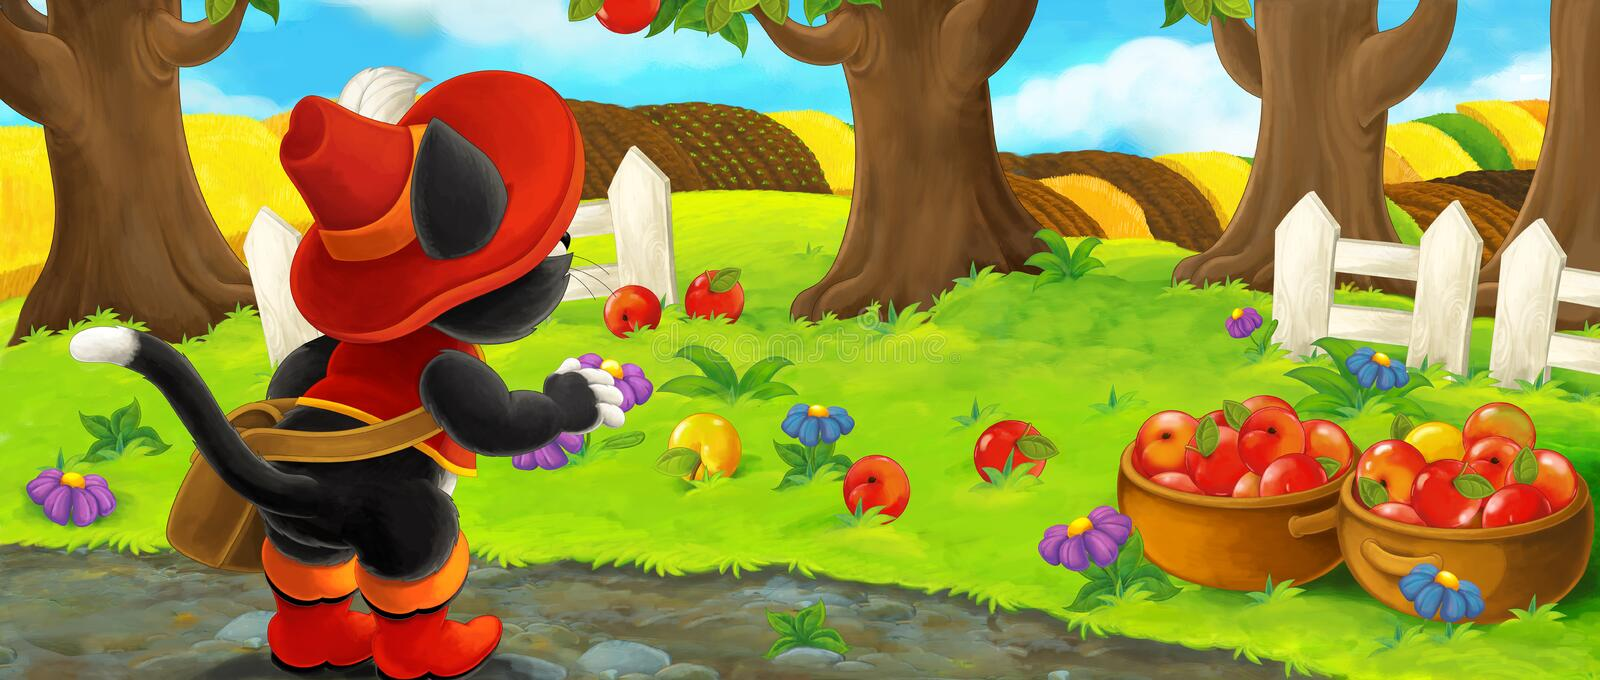 Cartoon scene with noble cat traveler visiting apple garden during beautiful day royalty free illustration